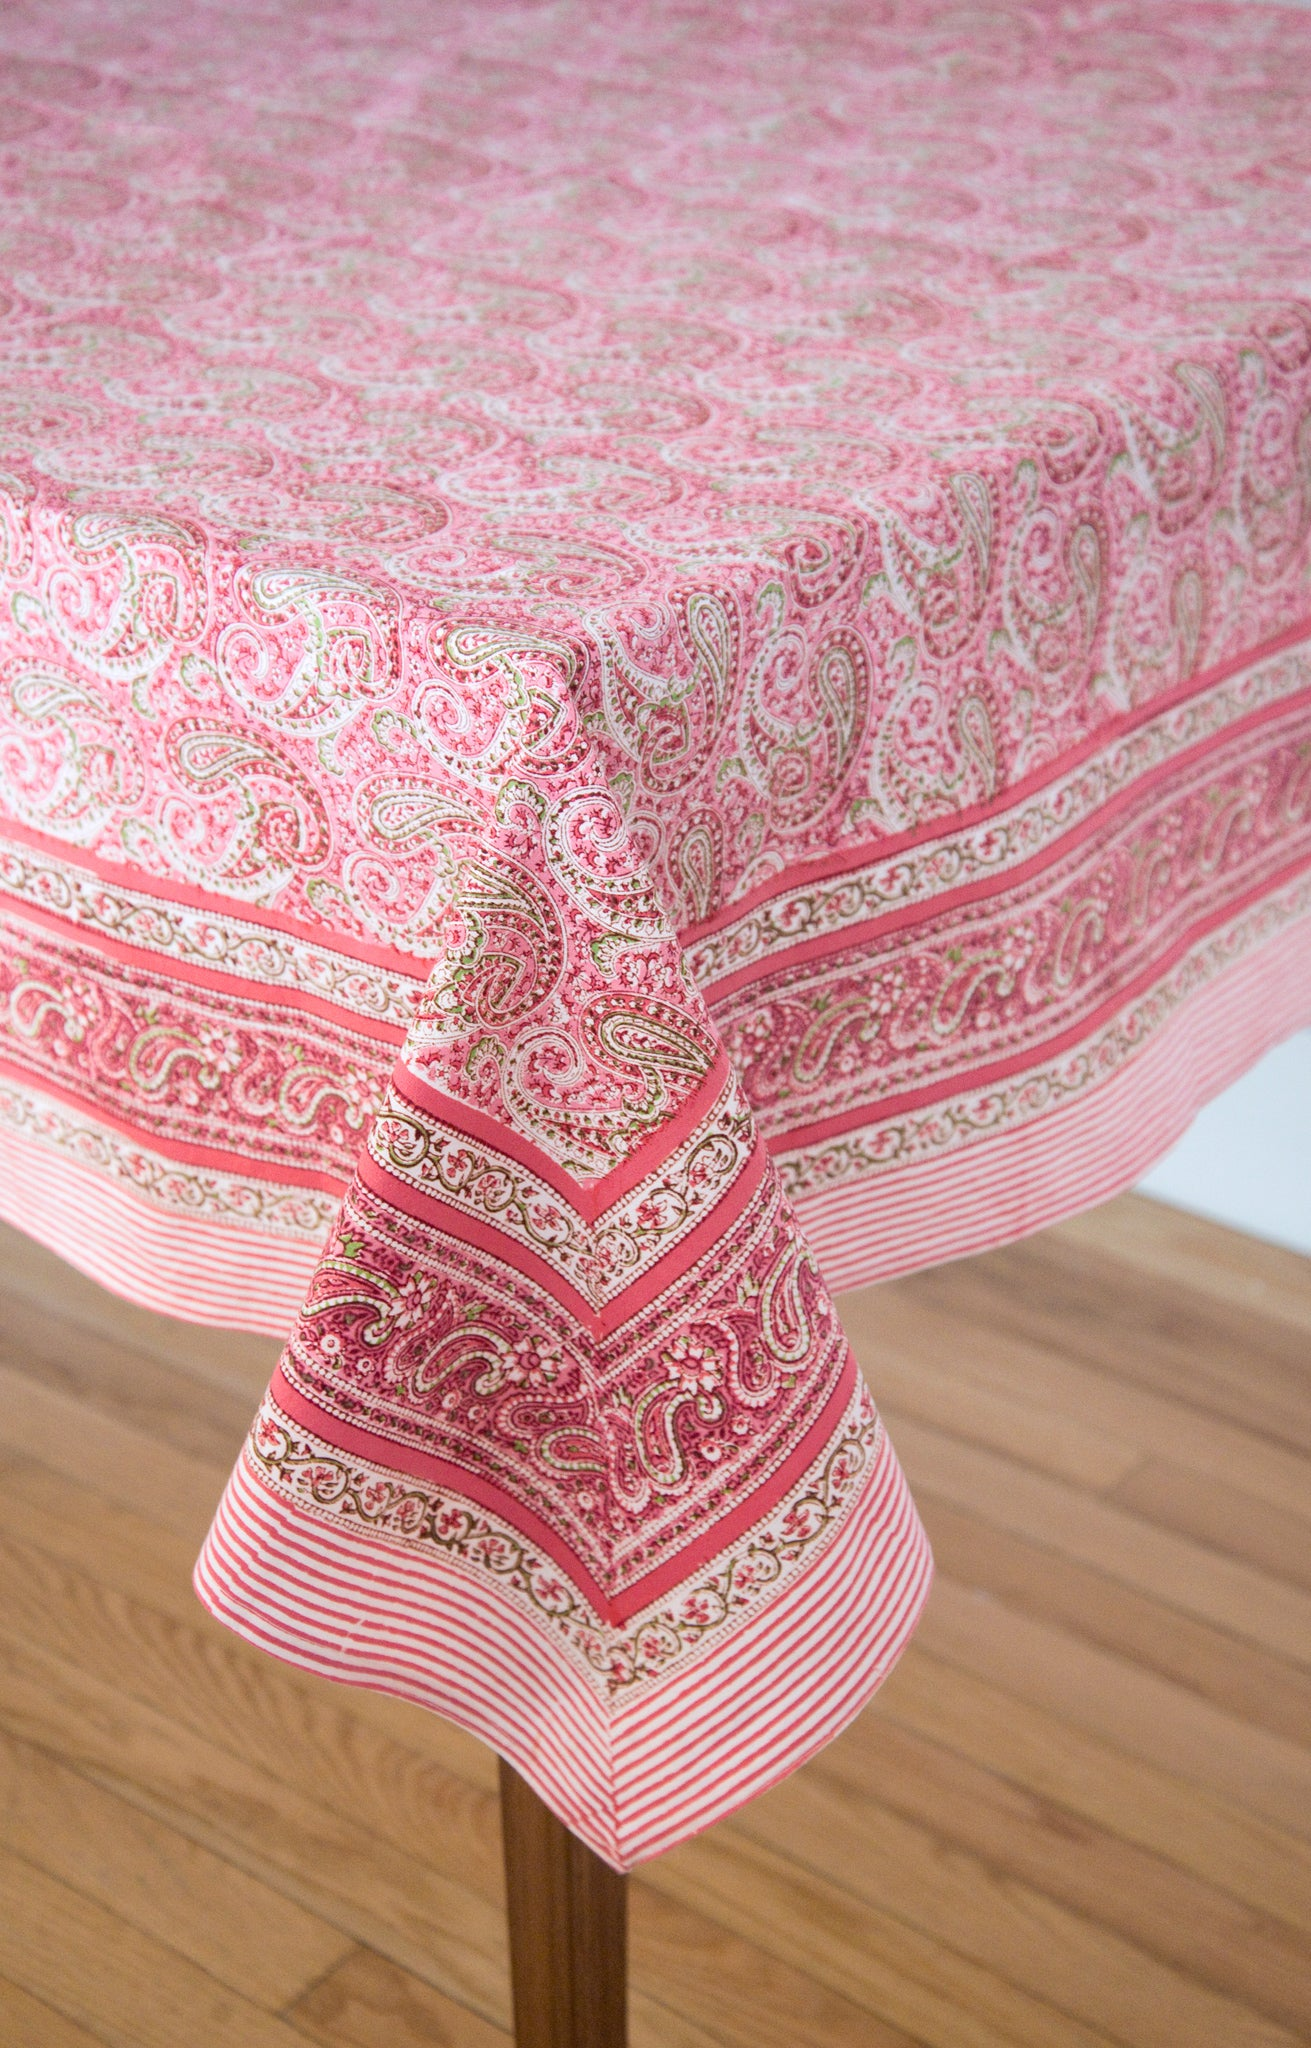 Table Linens In Pink Paisley